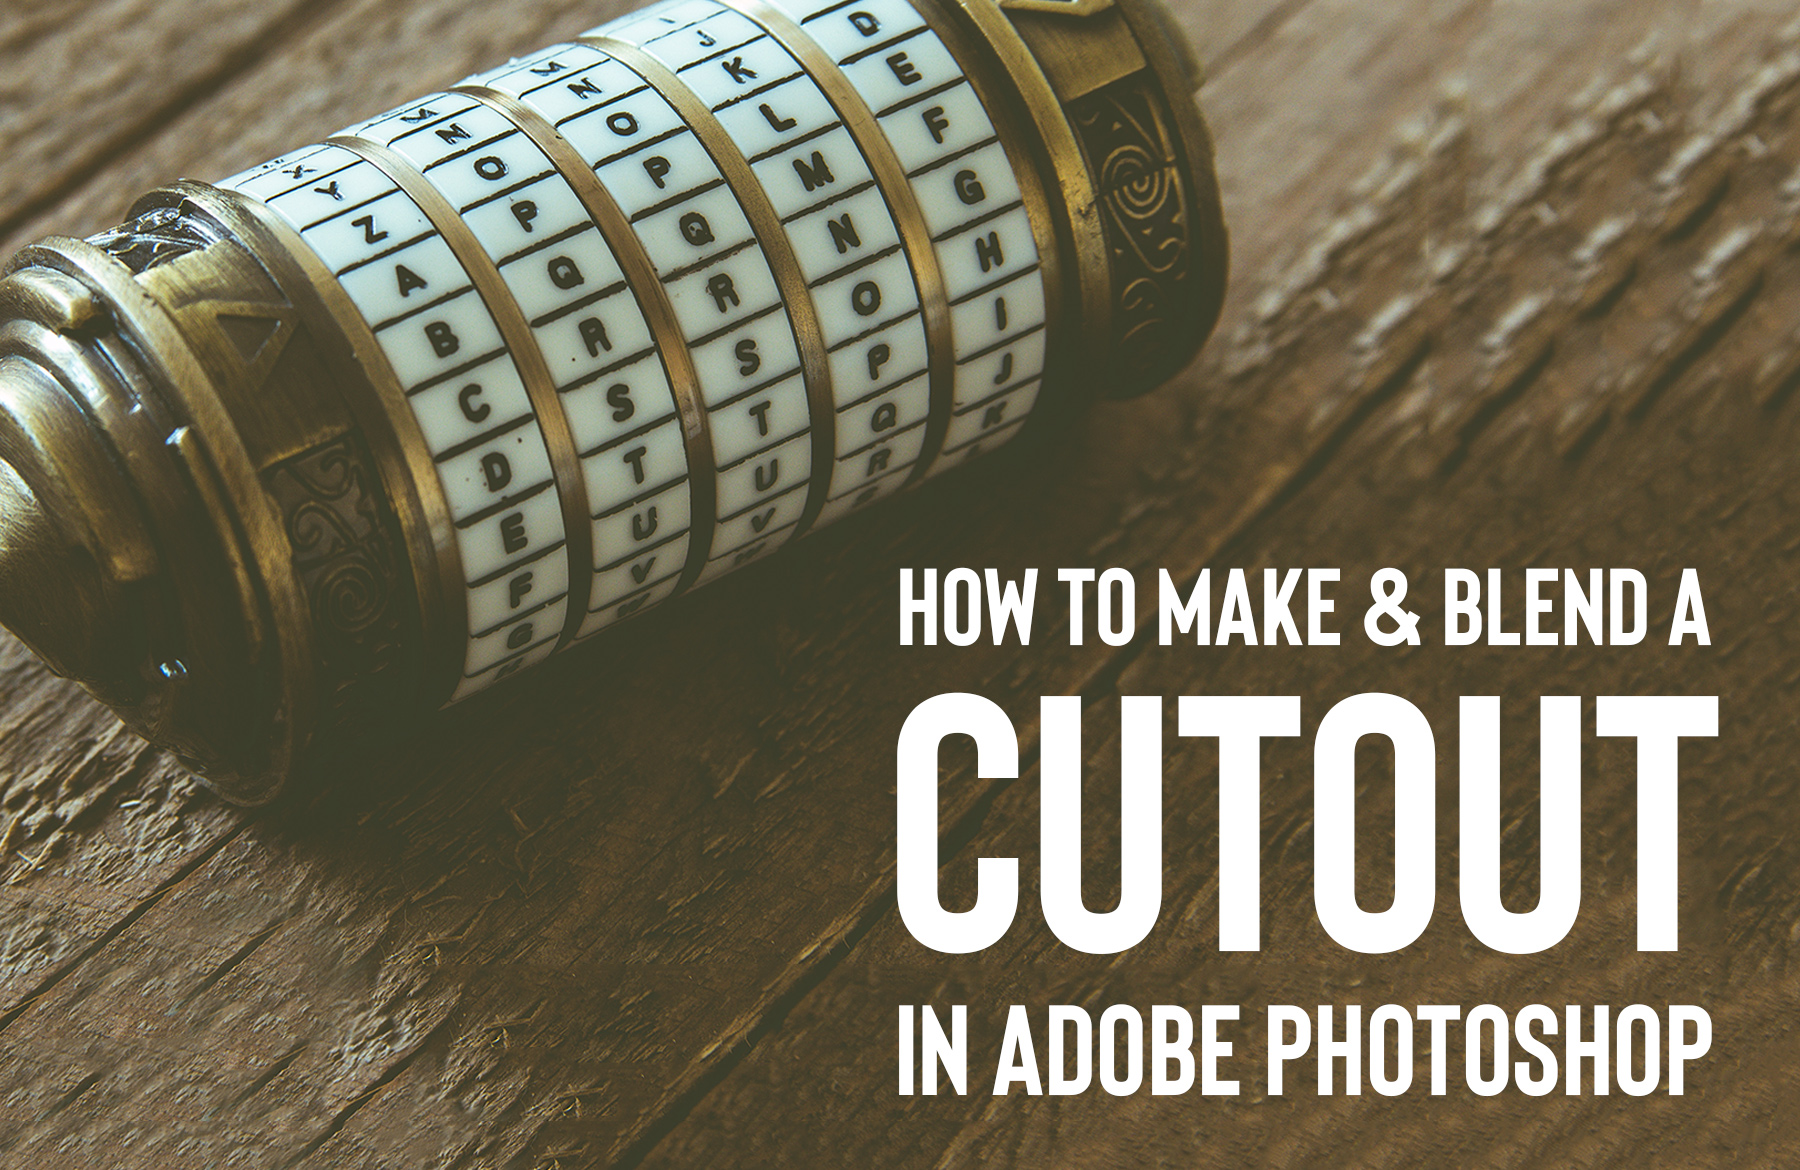 How To Make And Blend A Cutout In Photo